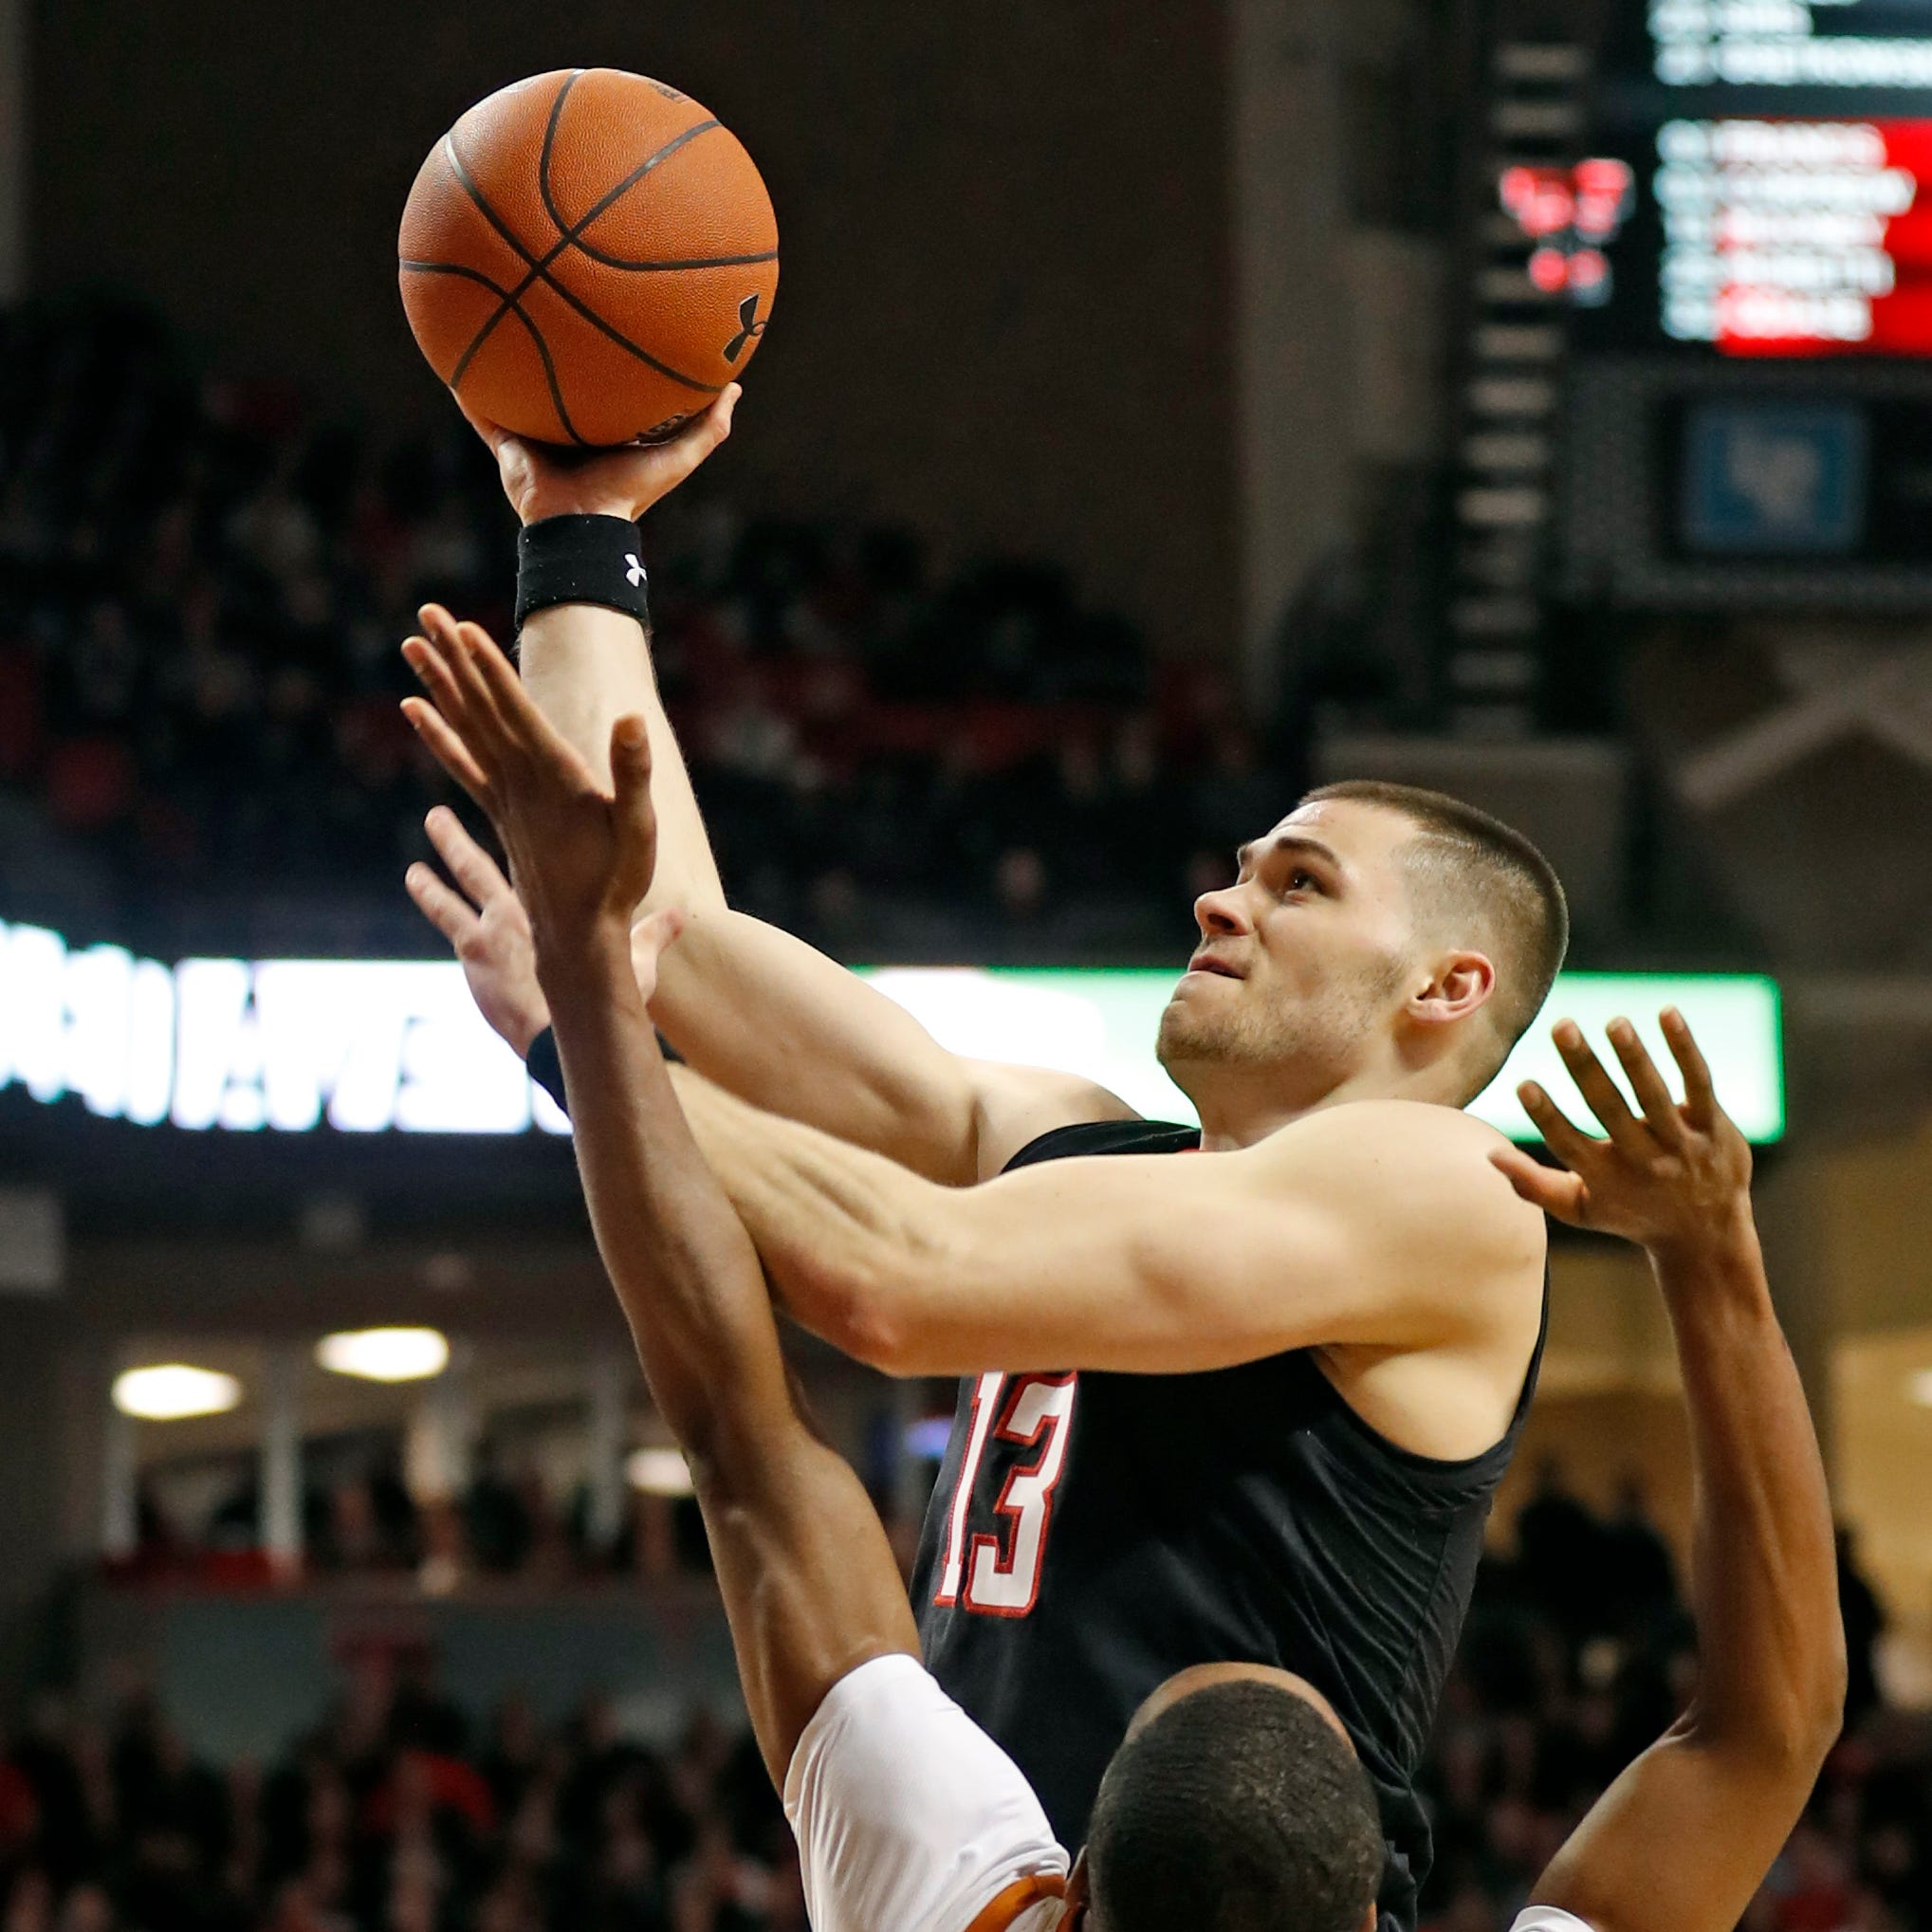 Big 12 Basketball: No. 8 Texas Tech finishes home schedule with dominant win over Texas